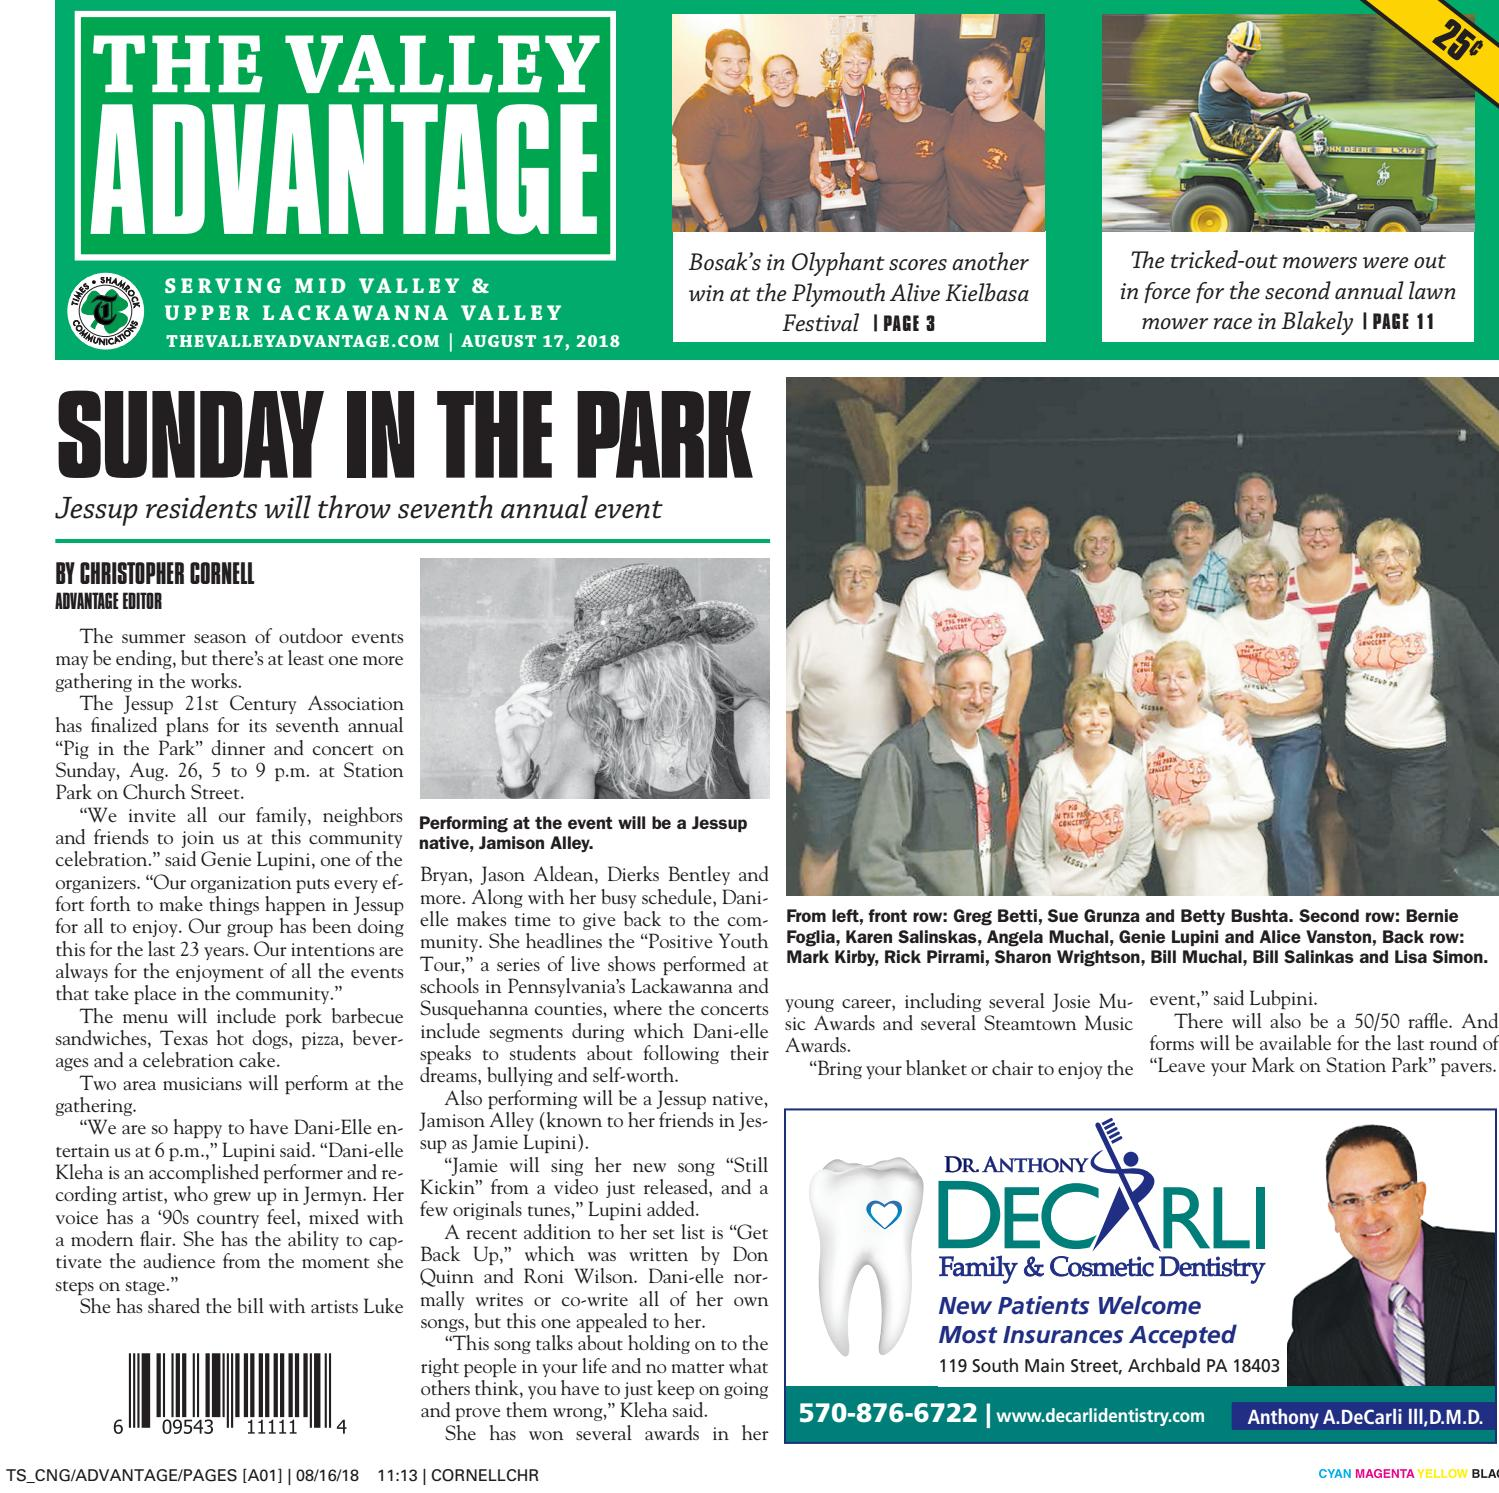 686174a447d The Valley Advantage--08-17-18 by CNG Newspaper Group - issuu